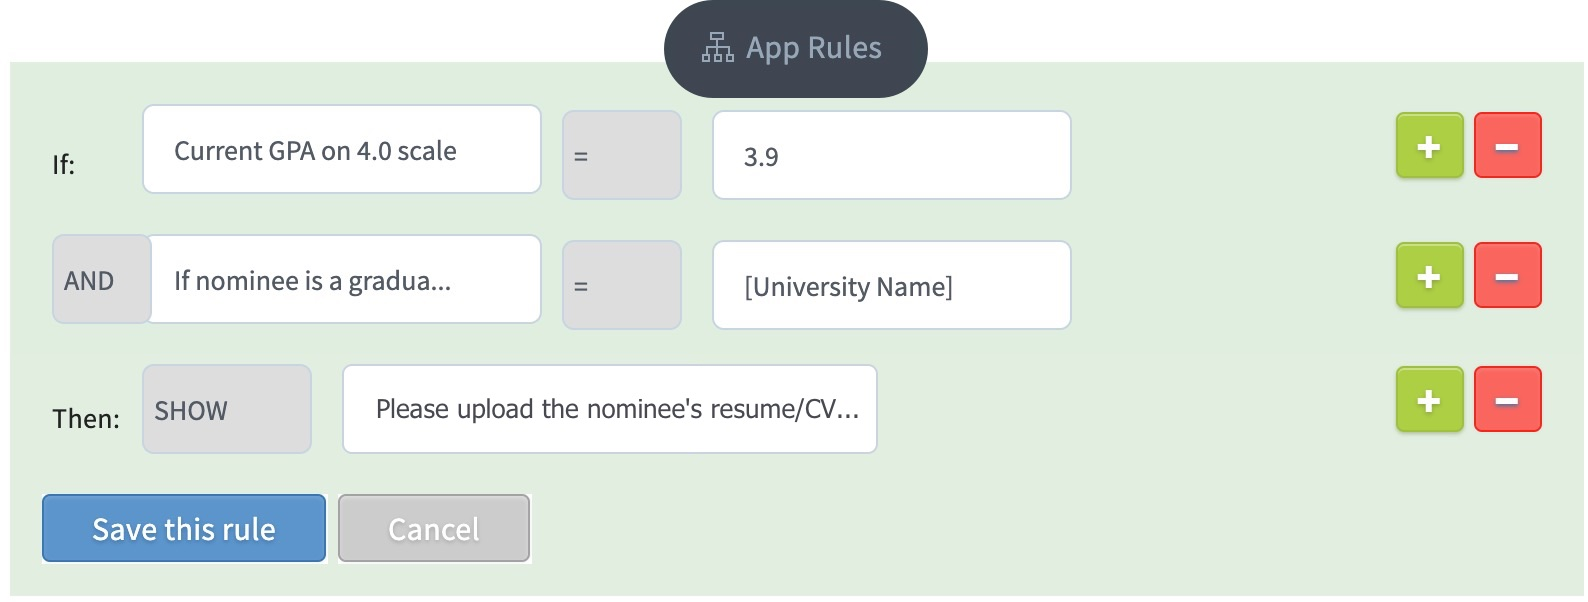 SmarterSelect-App-Rules-2